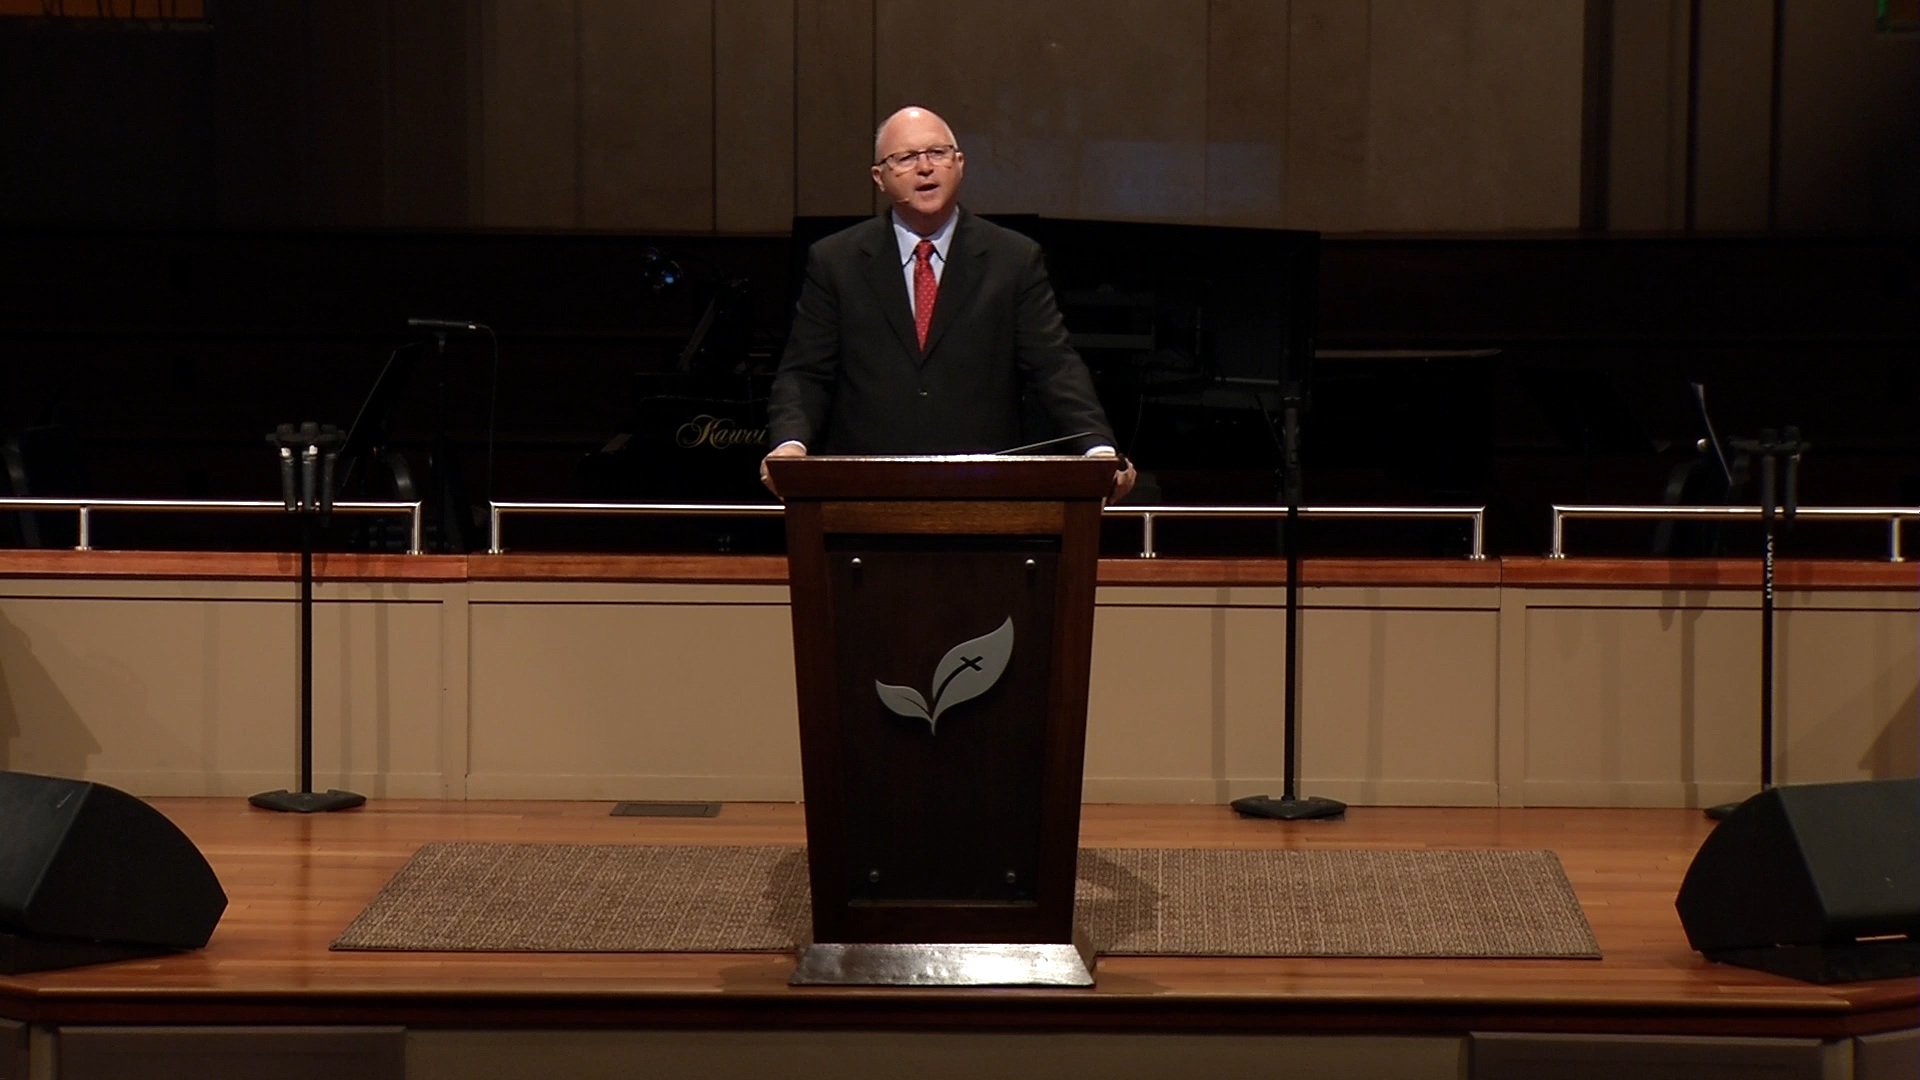 Pastor Paul Chappell: Give Thanks